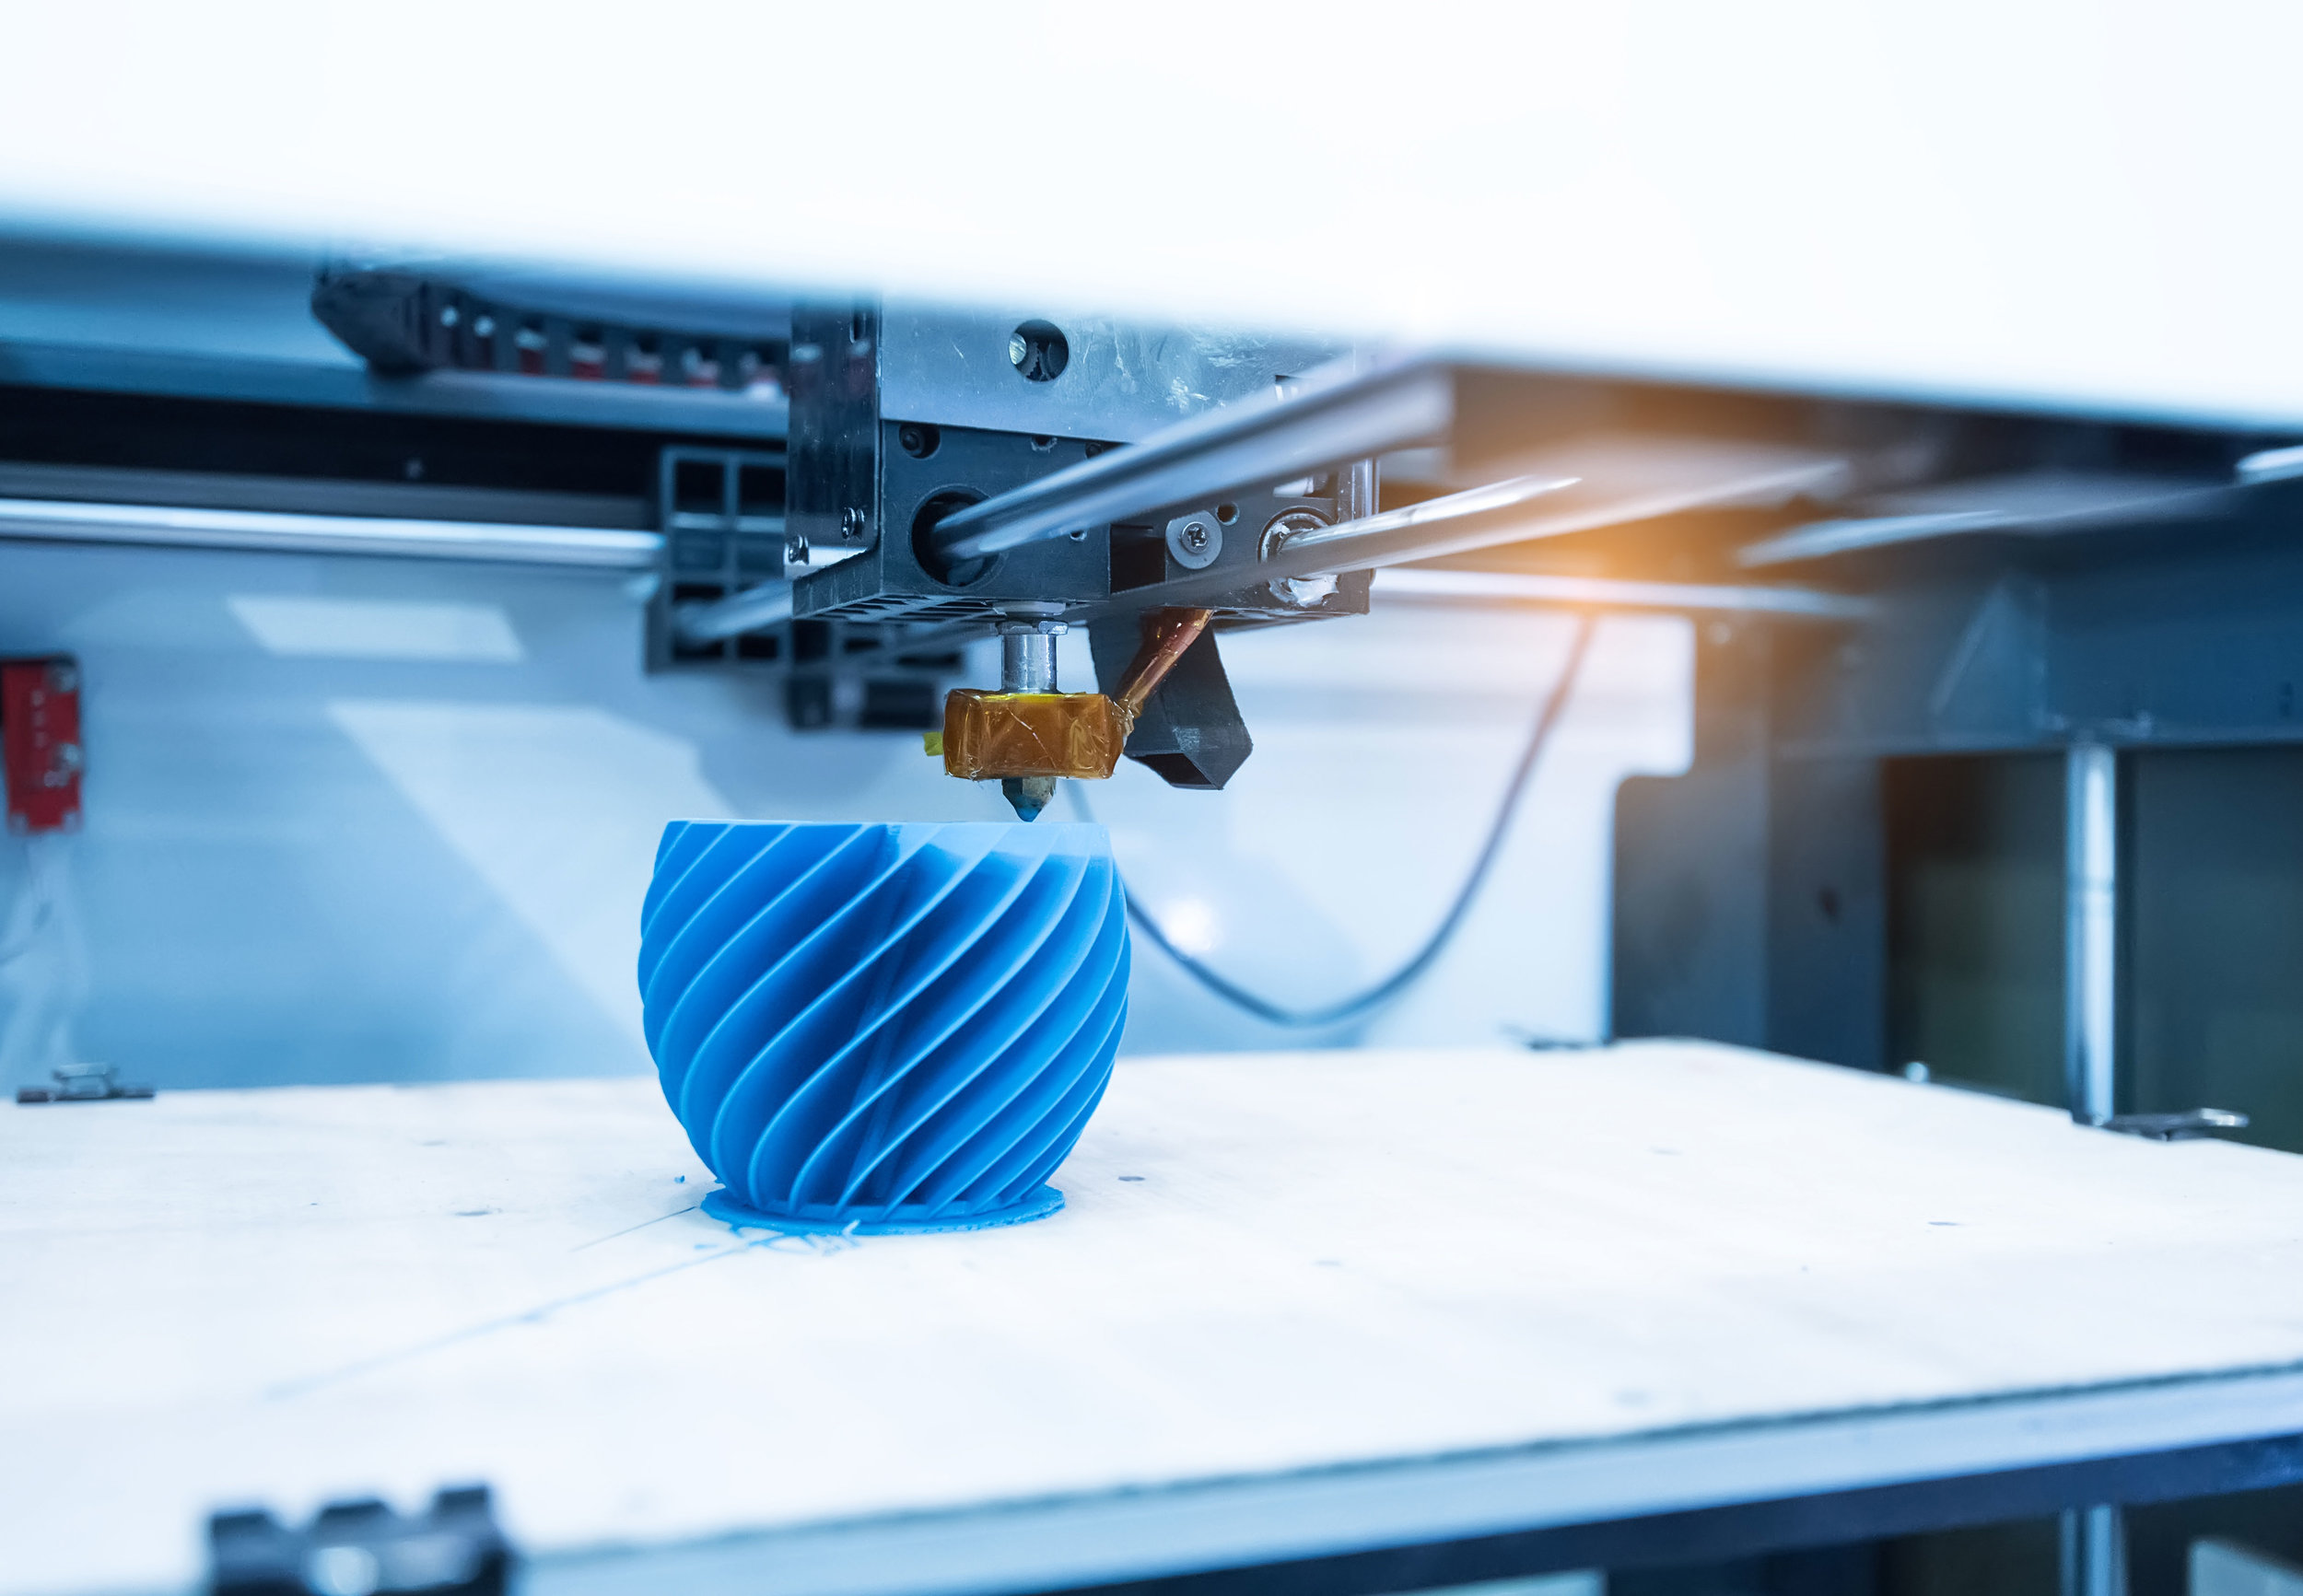 No printer?No Problem! - We offer 3D printing services to bring your models into reality